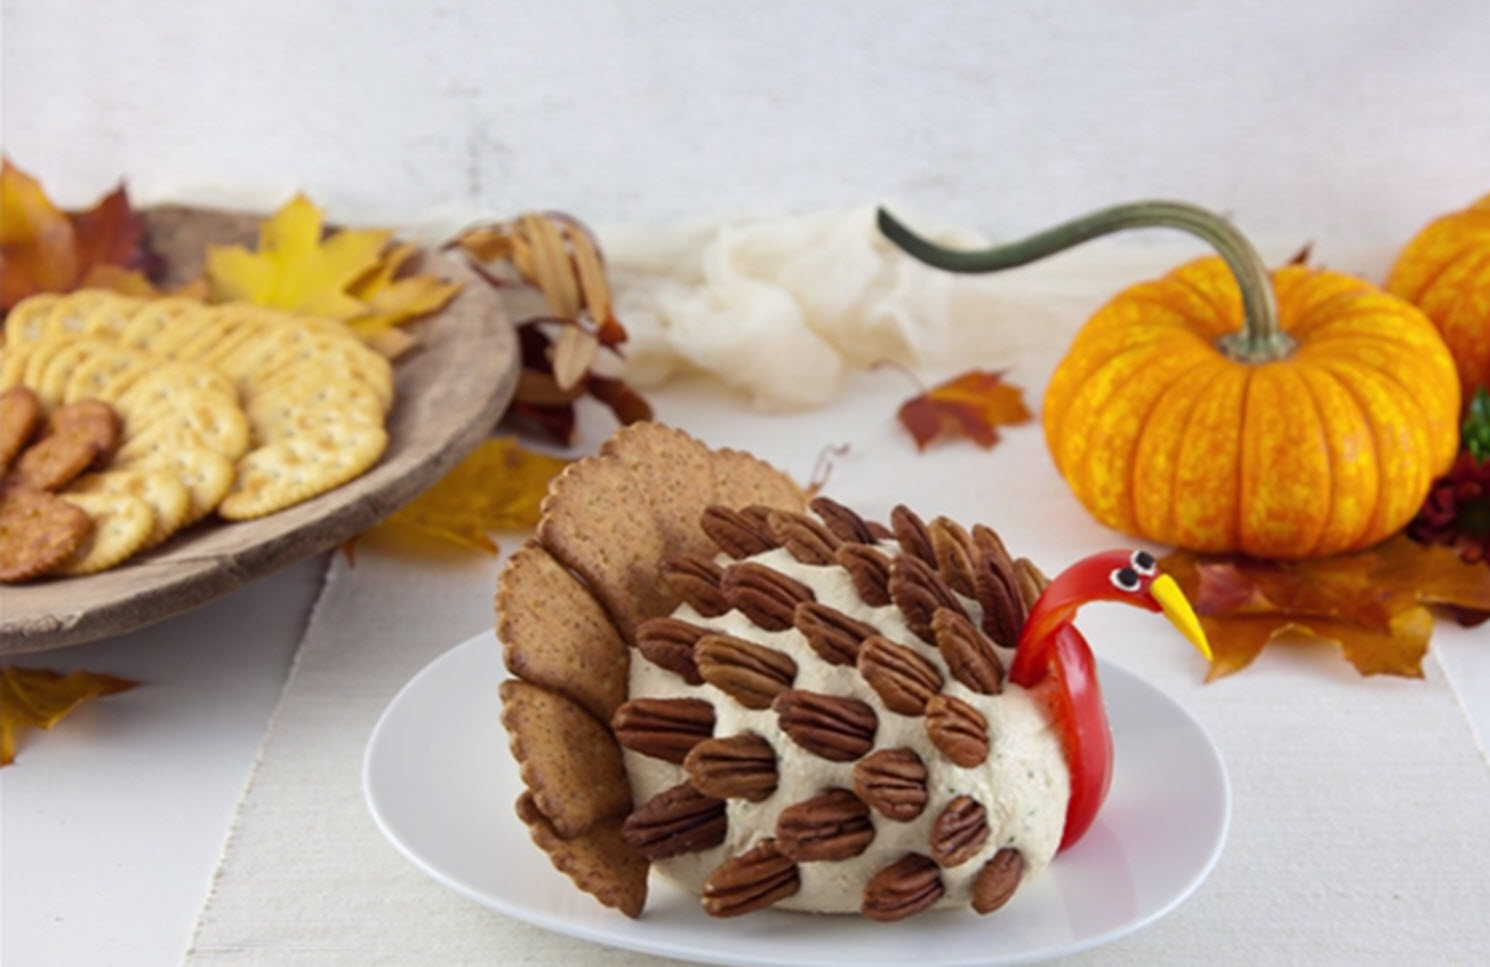 cheese ball shaped like a turkey with crackers in background